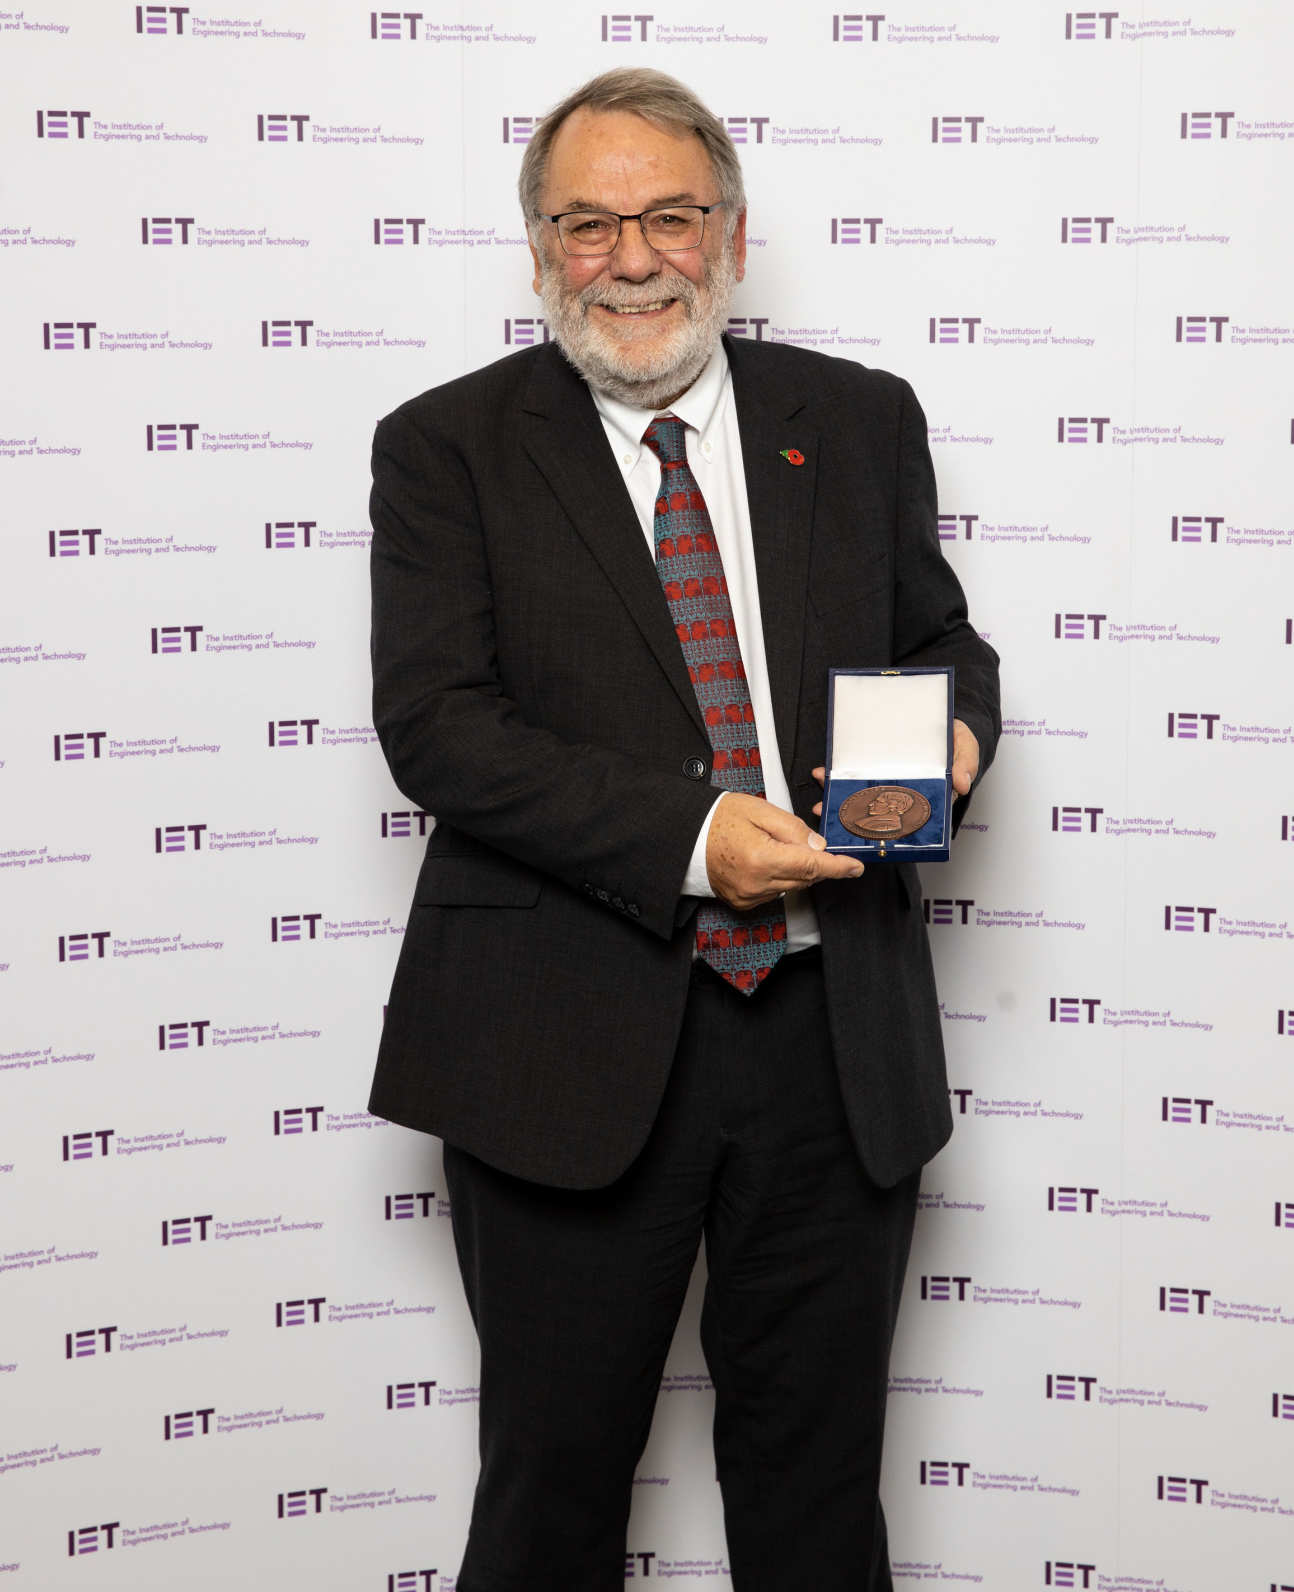 Peter Knight at IET awards